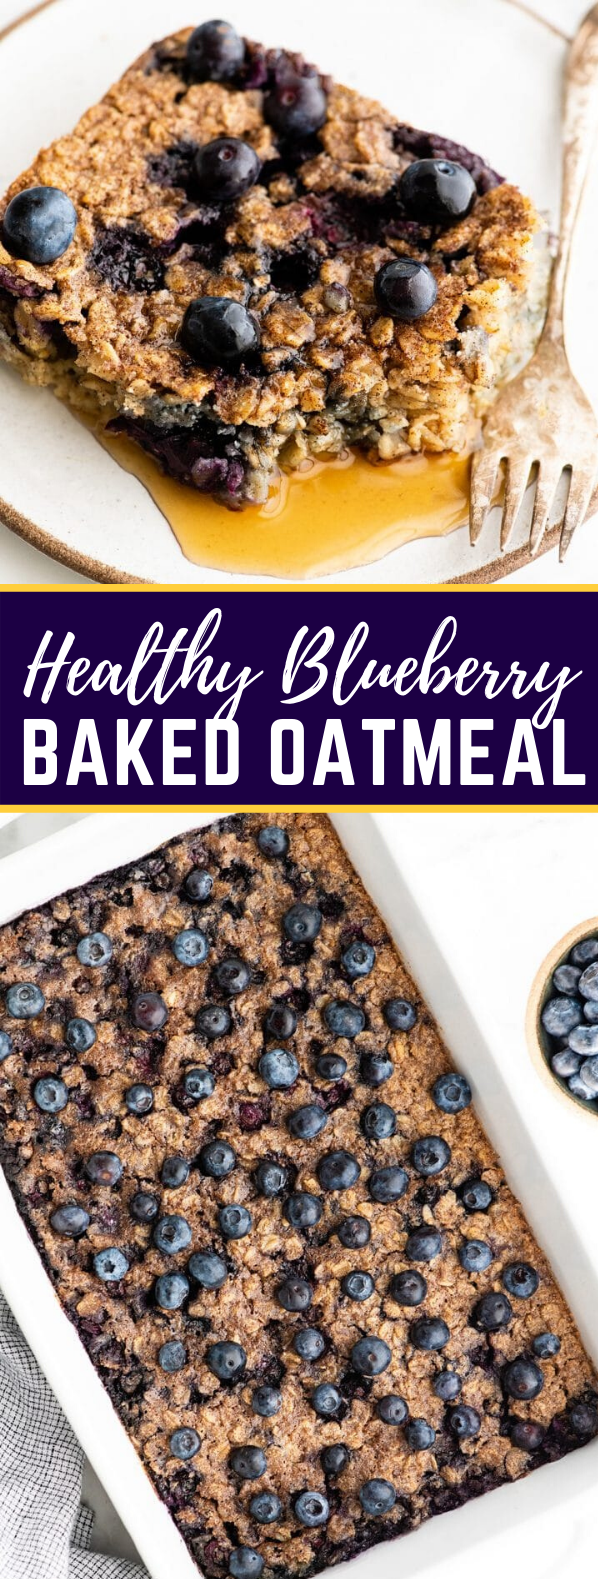 BLUEBERRY BAKED OATMEAL RECIPE #heatlhy #breakfast